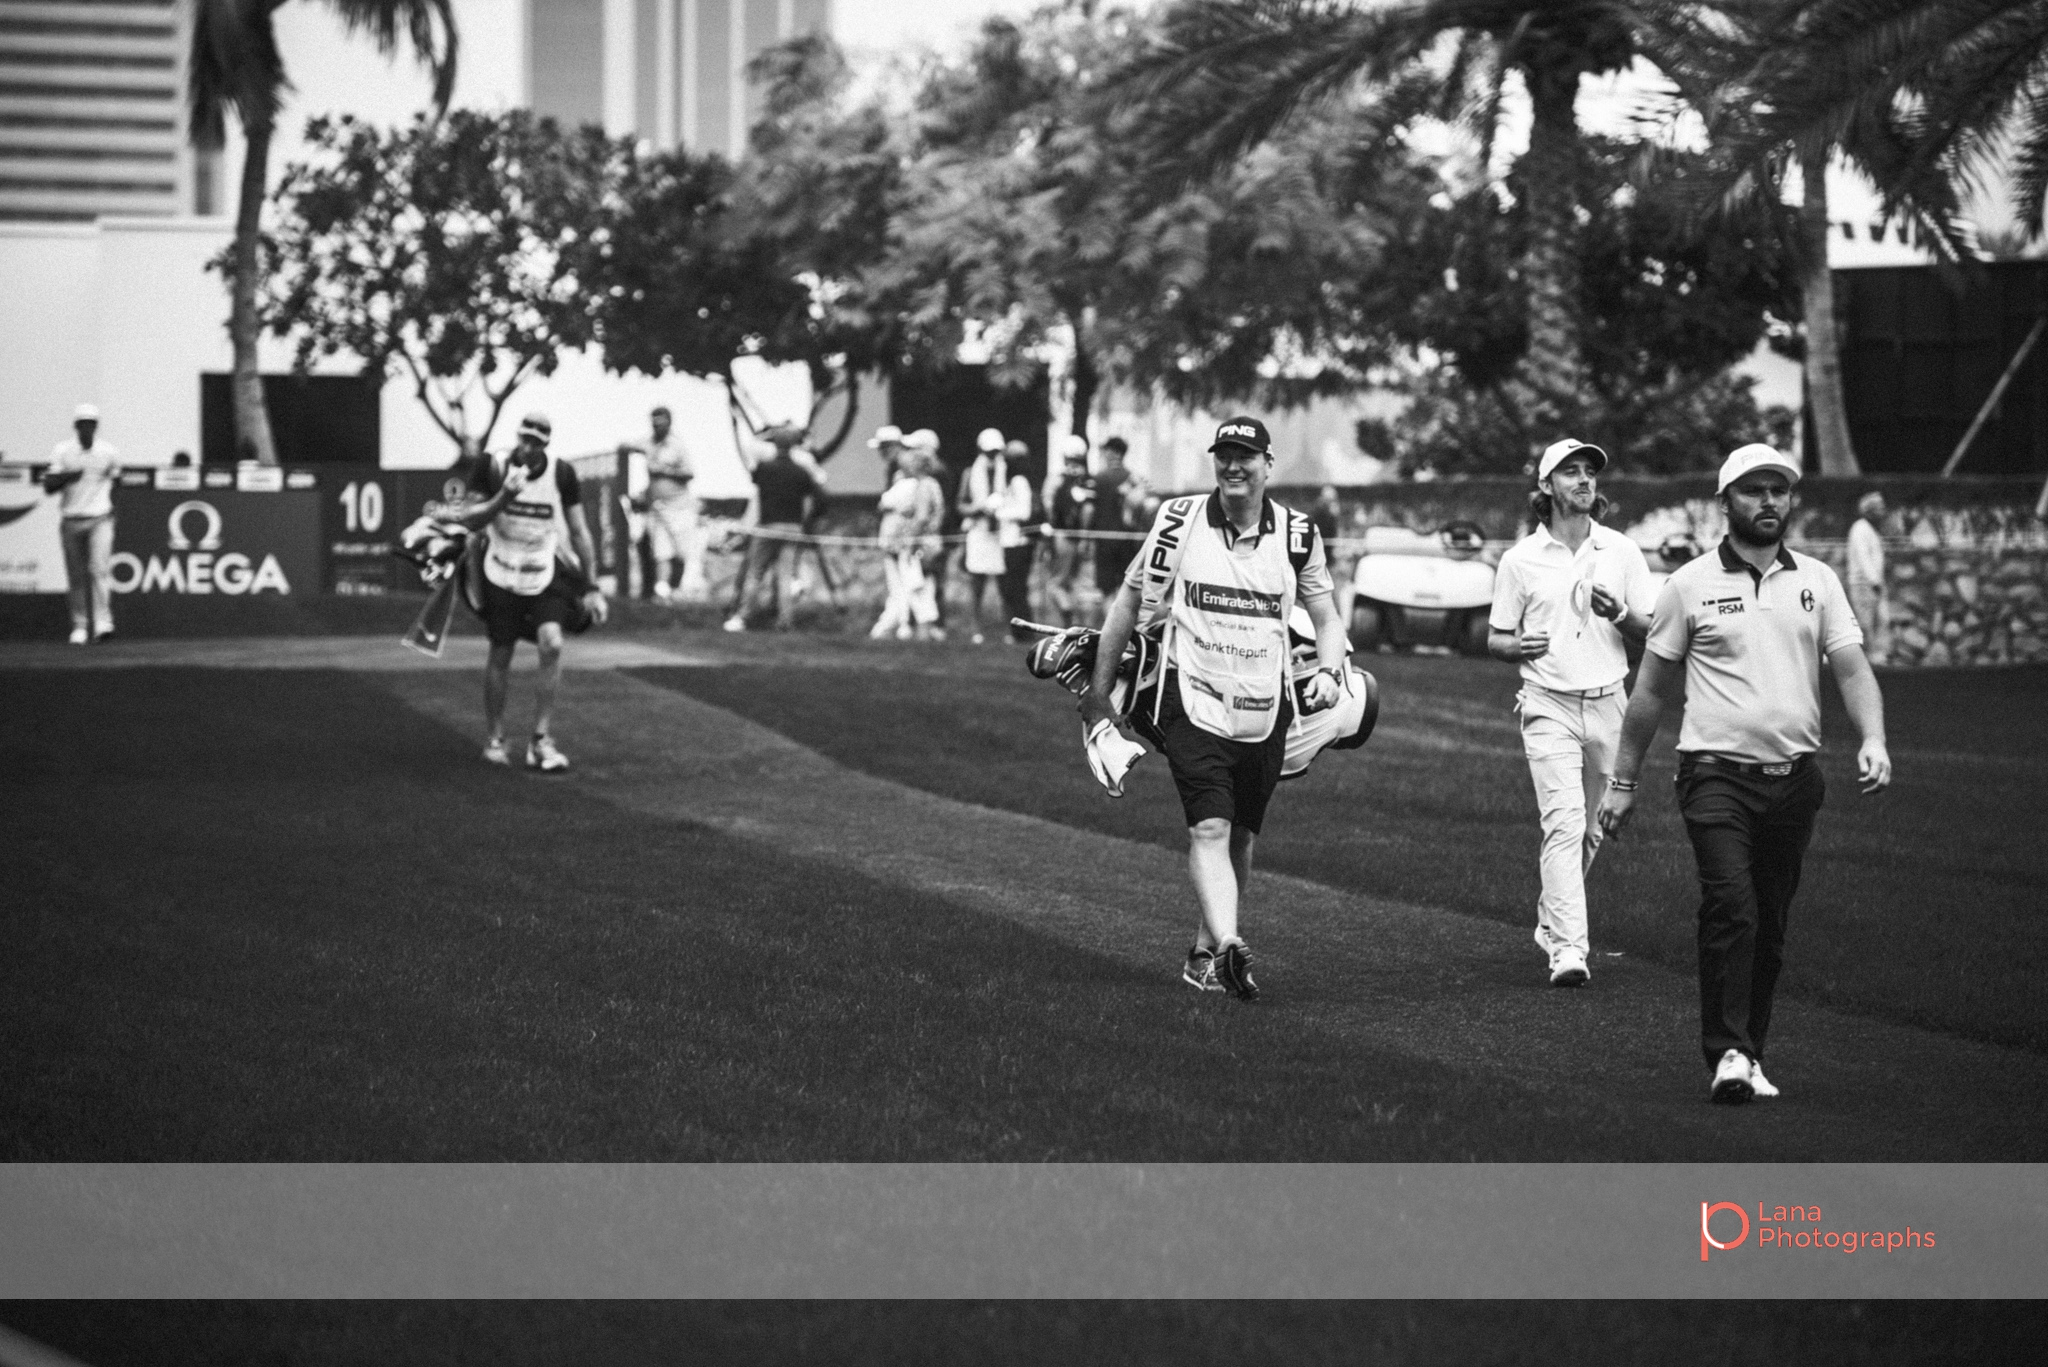 Tour players walking across the grounds at the Omega Dubai Desert Classic